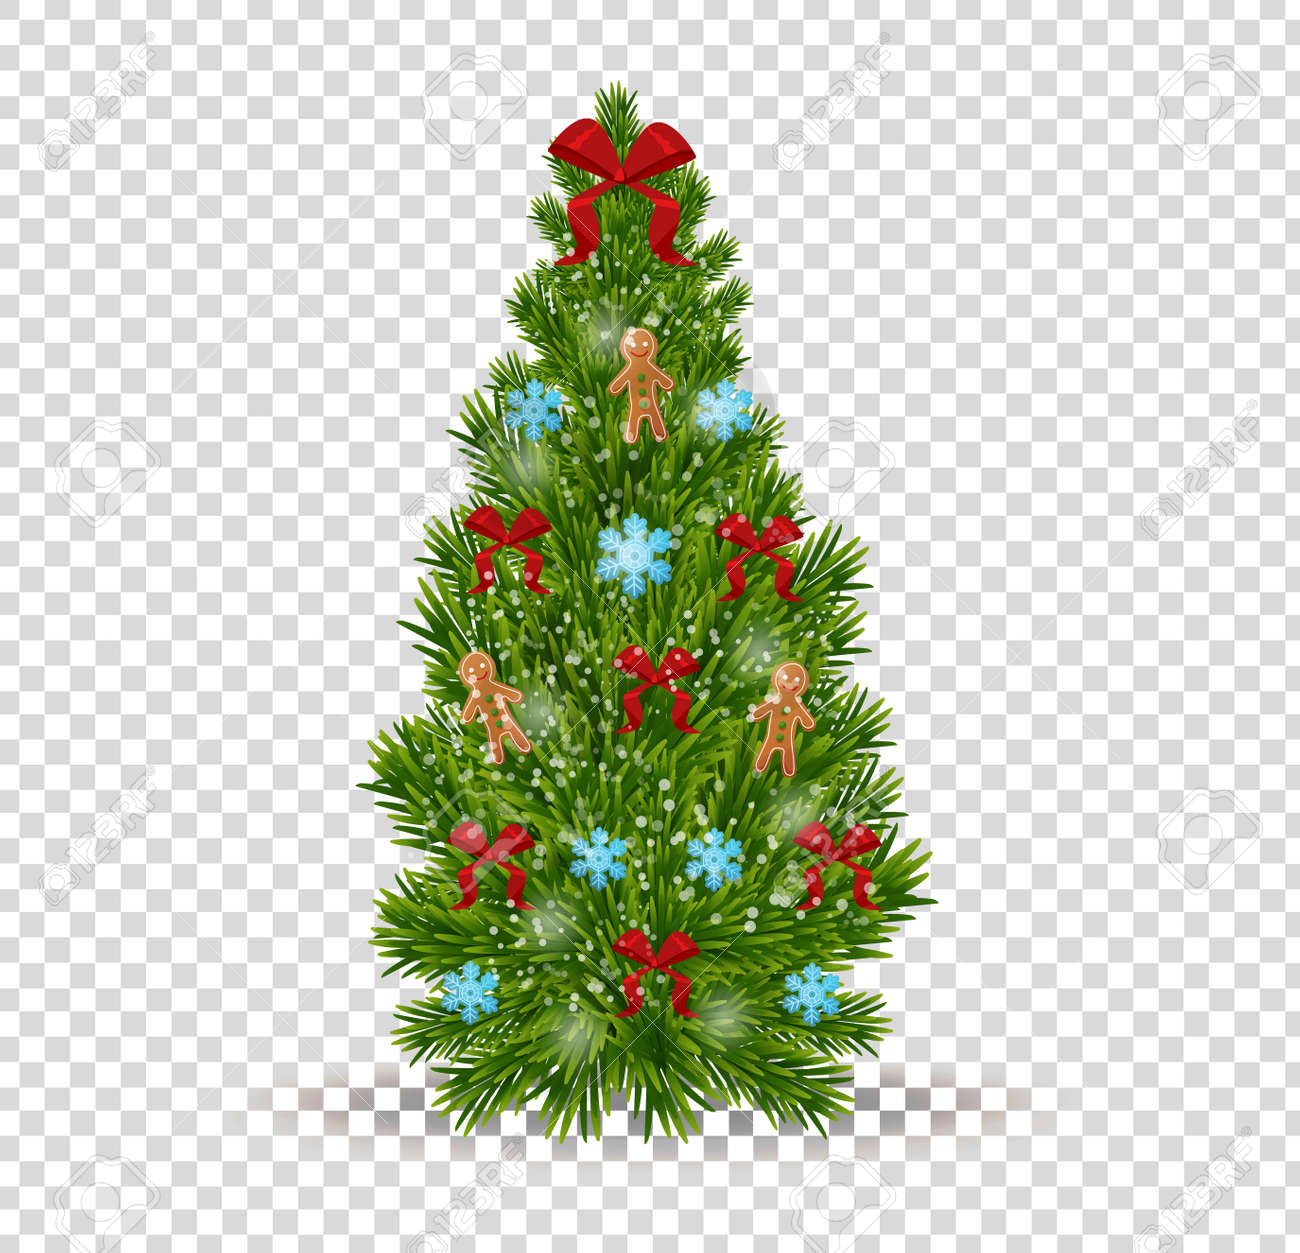 Christmas Tree Transparent Background.Merry Christmas Beautiful Realistic Christmas Tree On Transparent